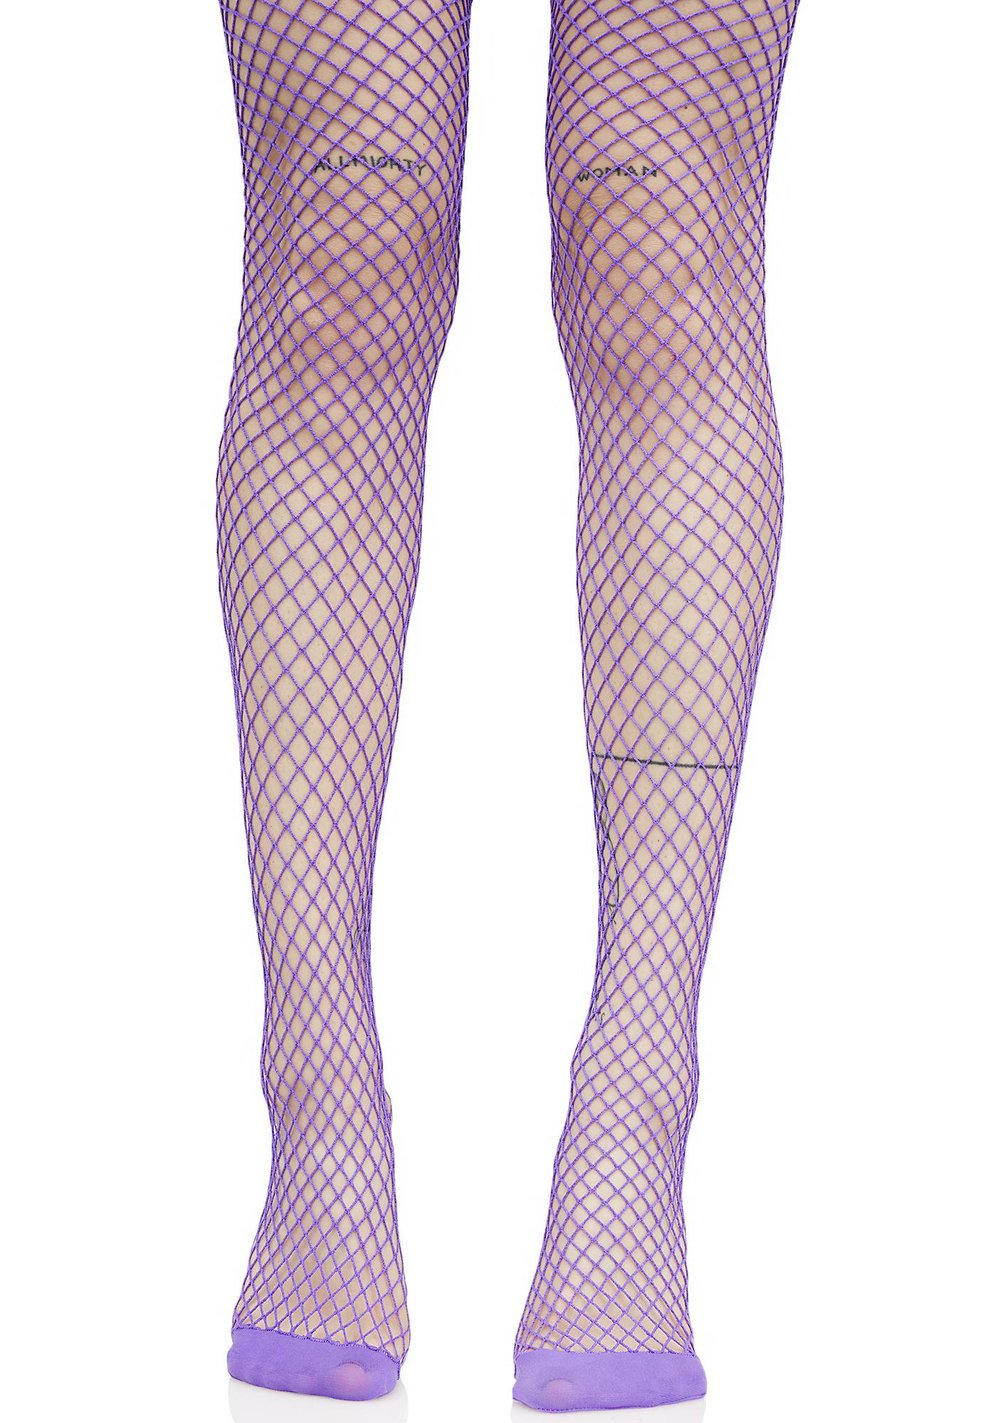 VIOLET BOLD MOVE FISHNET TIGHTS - $8